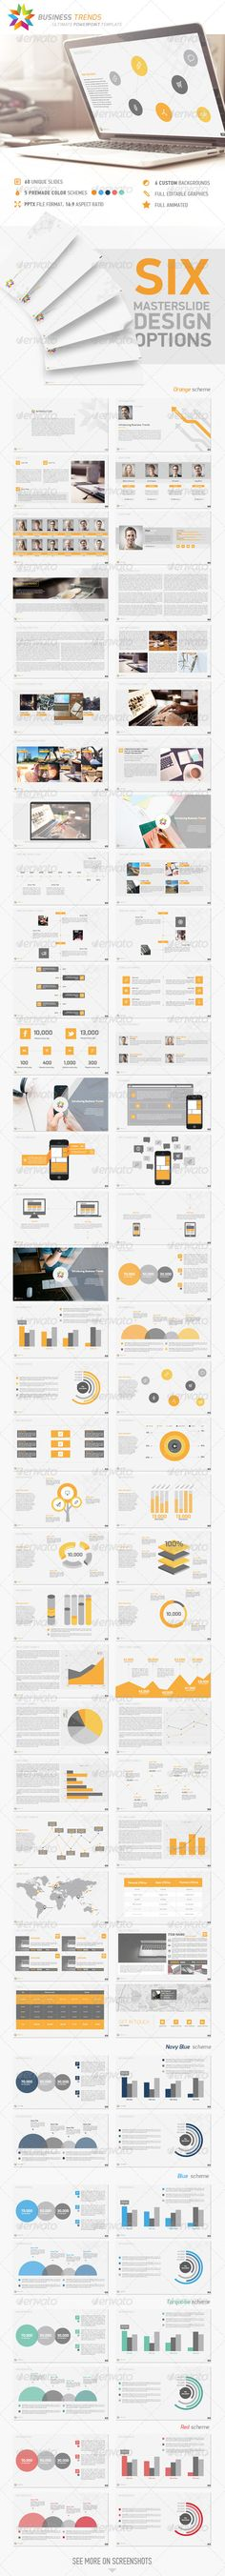 Business Trends PowerPoint Template